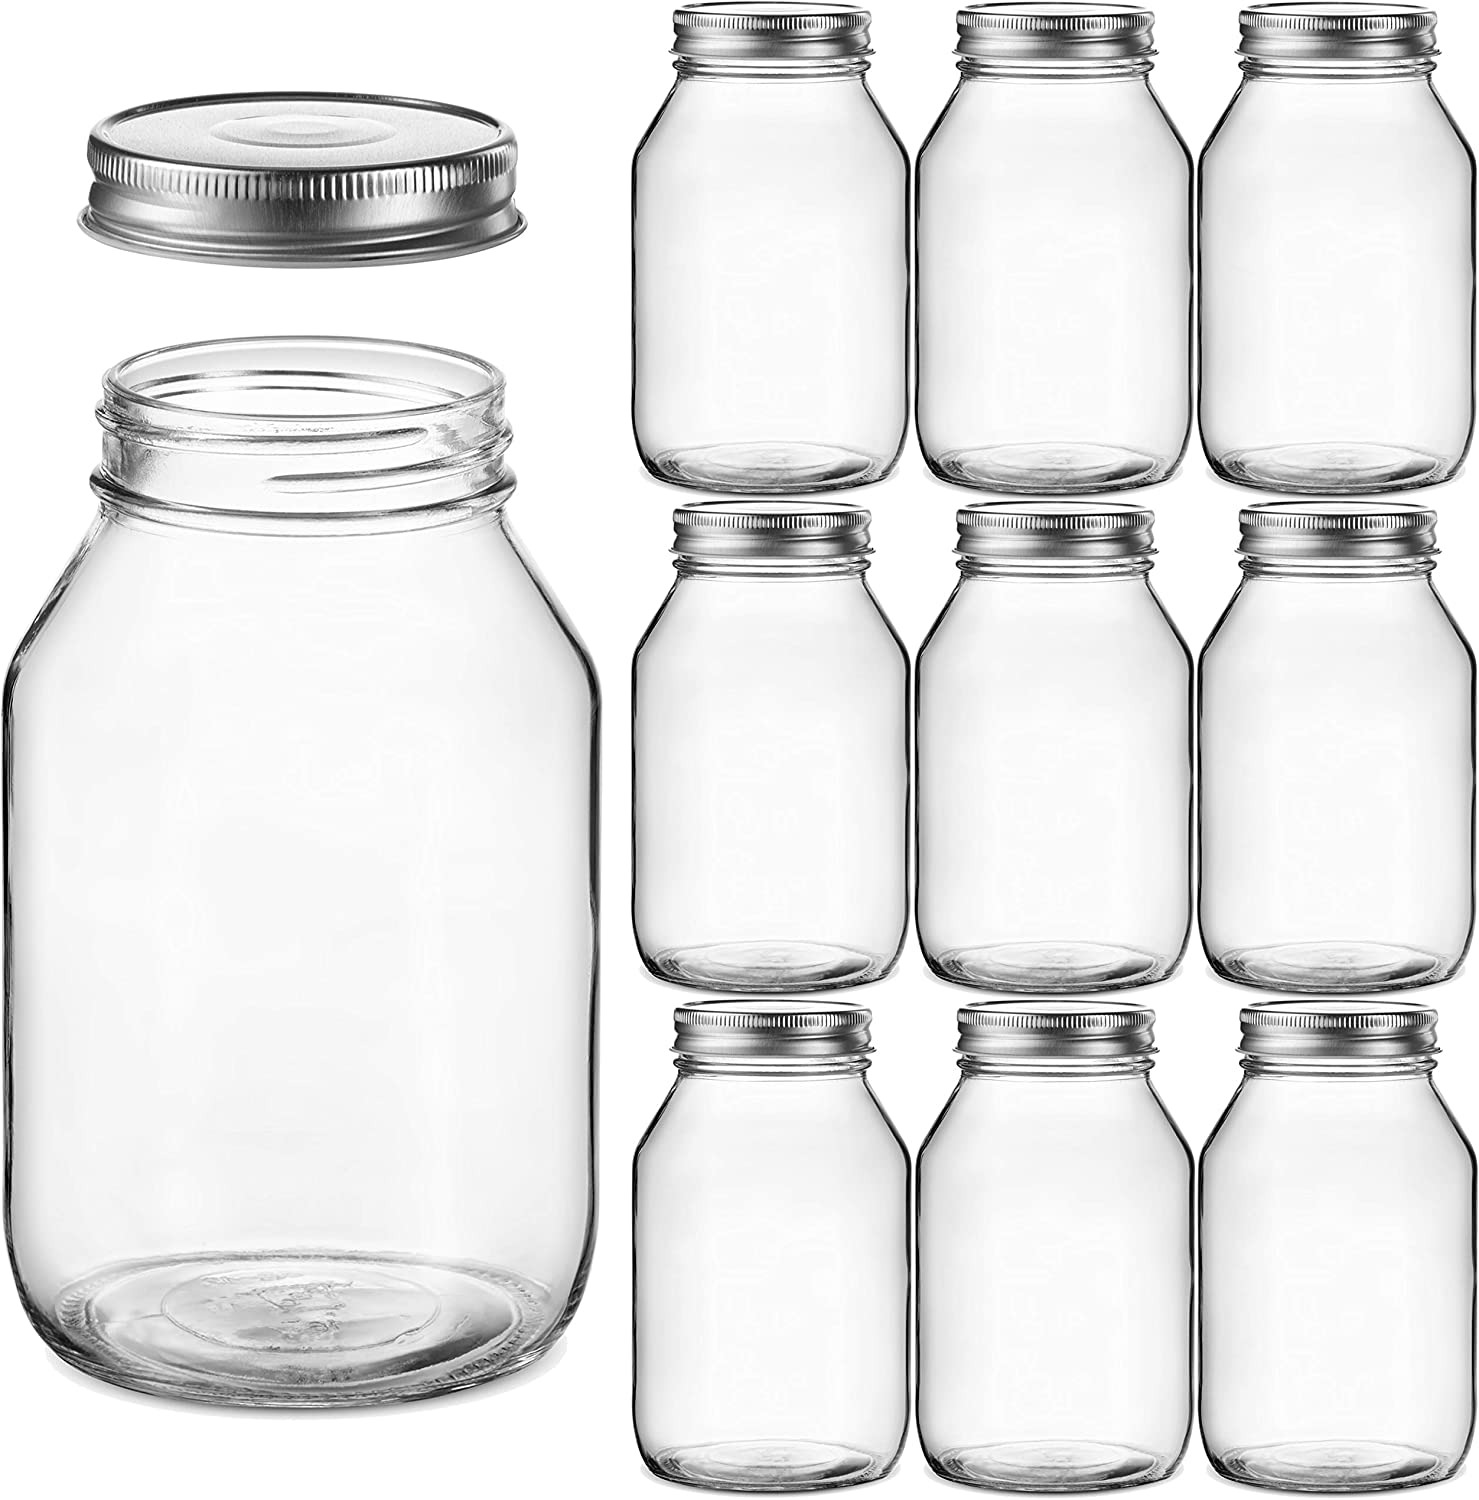 Glass Regular Mouth Mason Jars, 32 Ounce (10 Pack) Glass Jars with Silver Metal Airtight Lids for Meal Prep, Food Storage, Canning, Drinking, Overnight Oats, Jelly, Dry Food, Spices, Salads, Yogurt